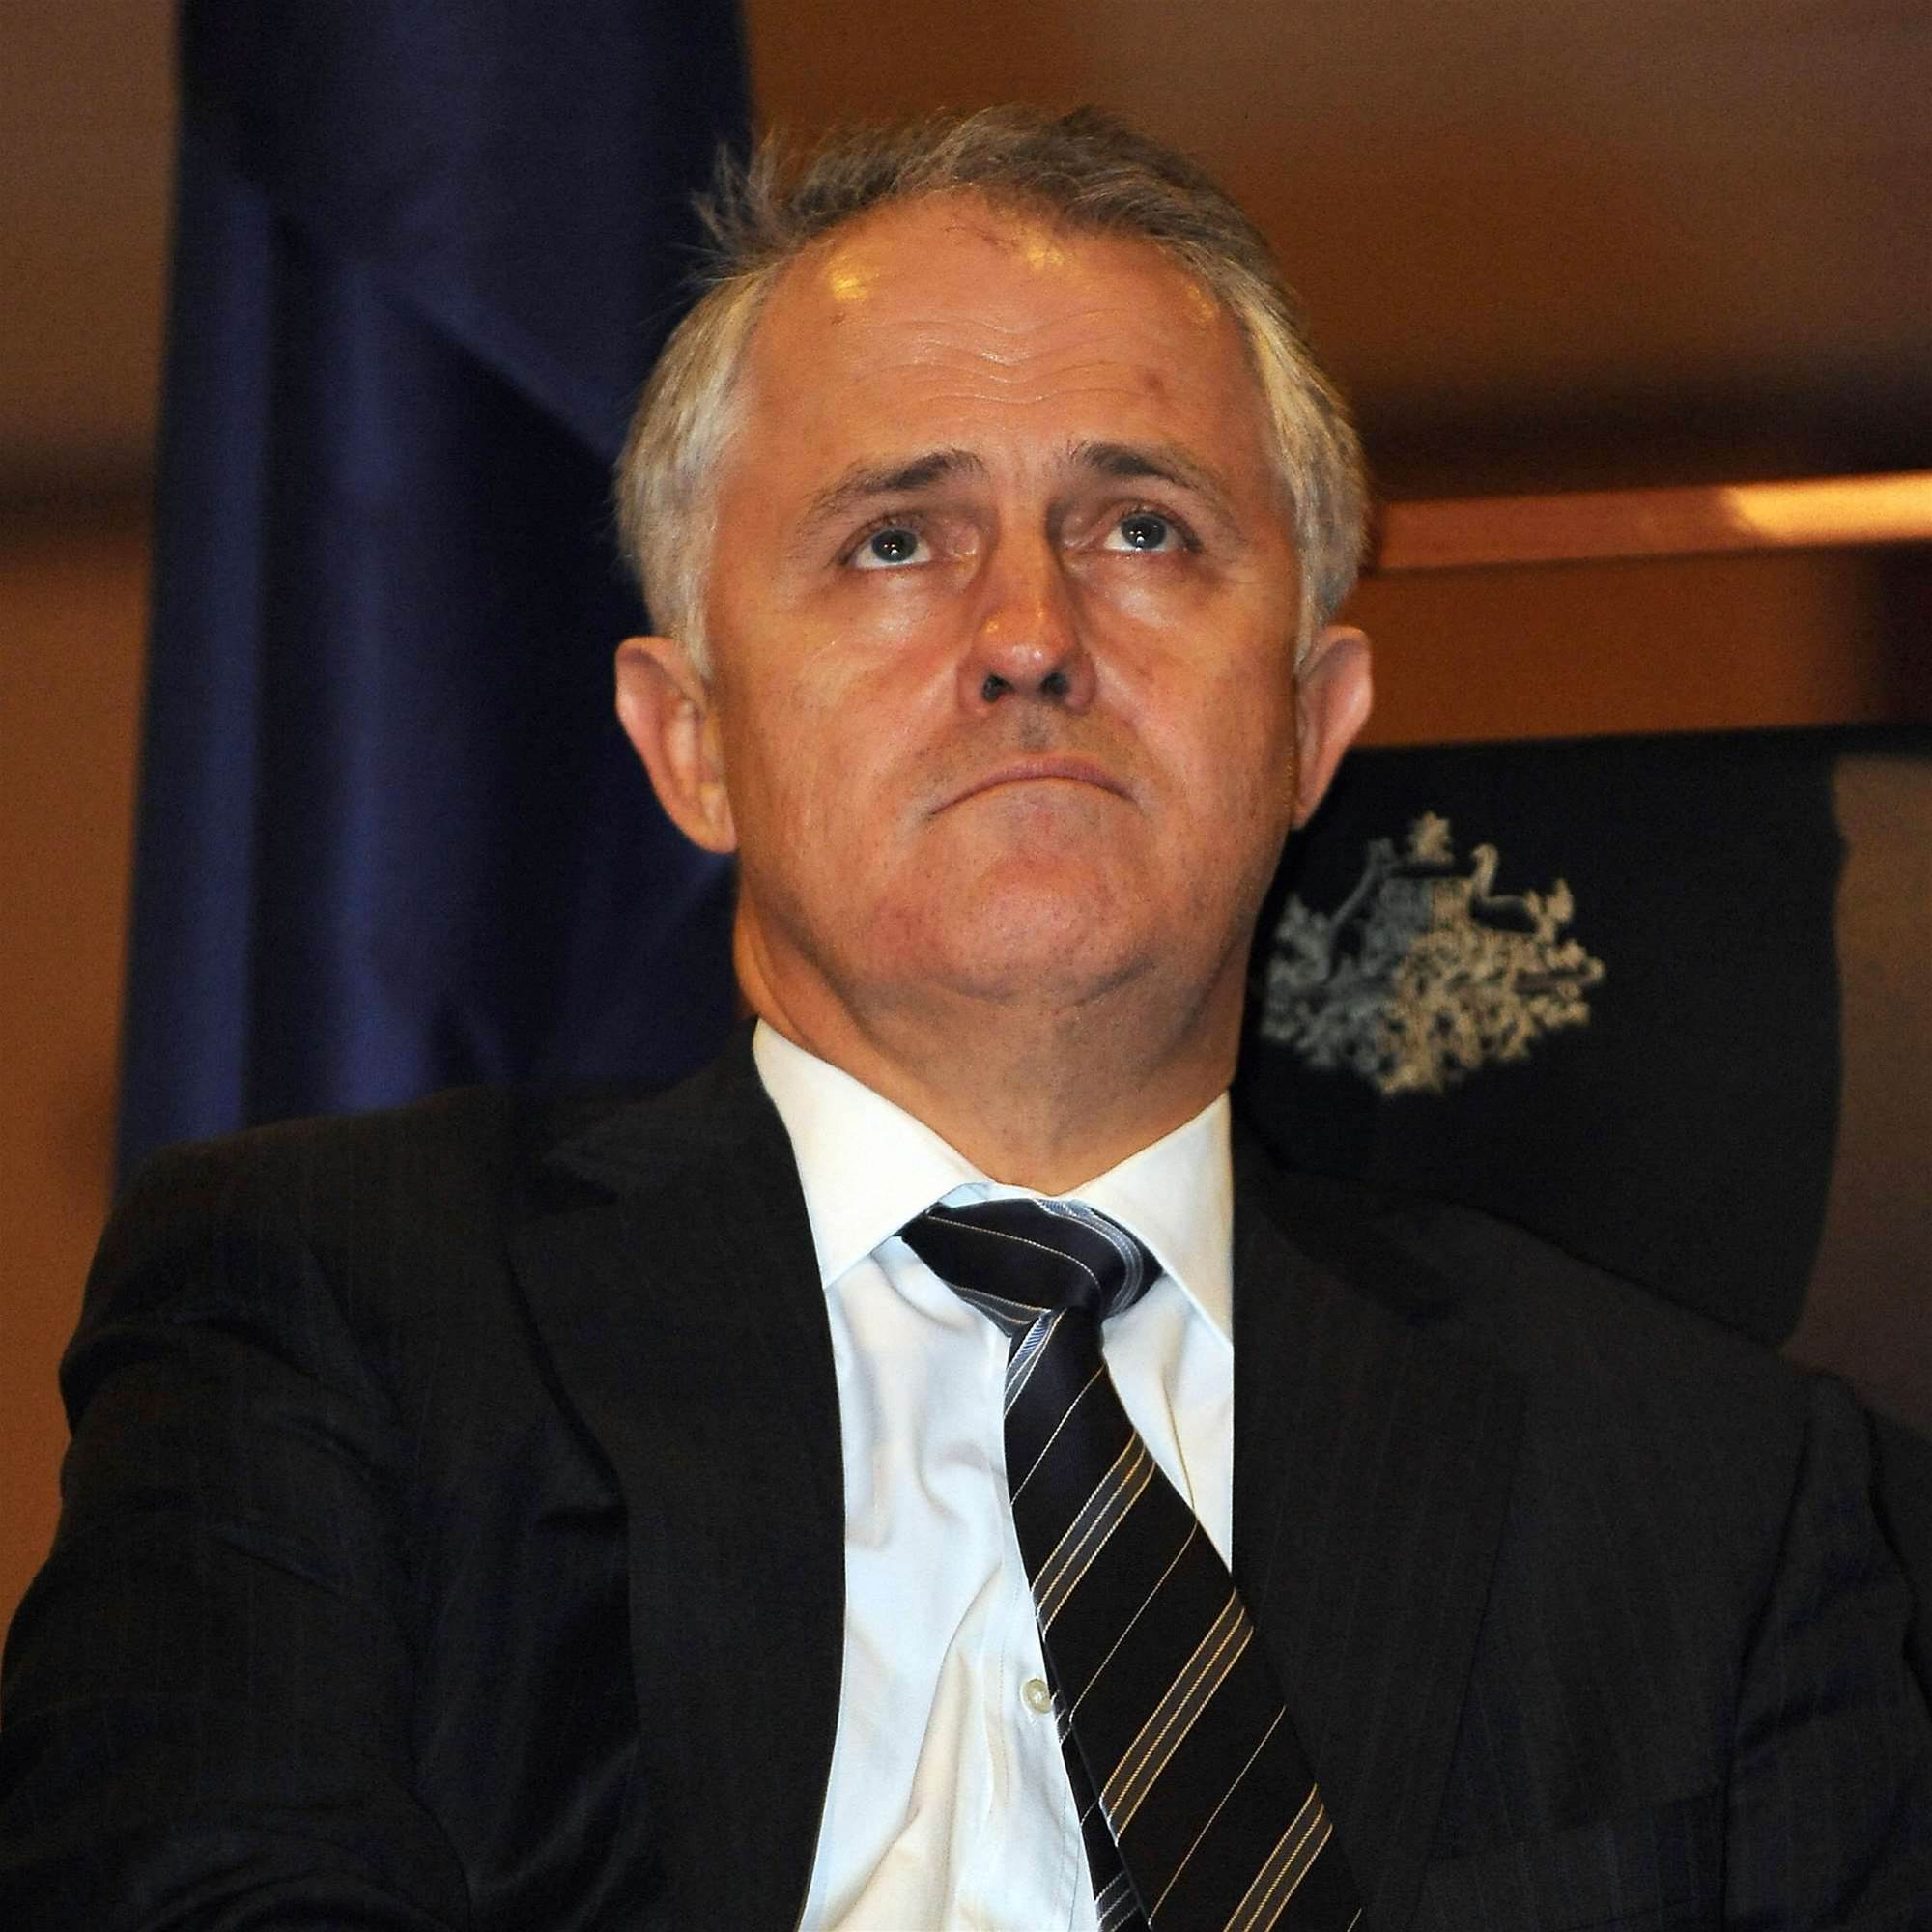 Turnbull prevaricates while Brandis wants harsher measures against piracy